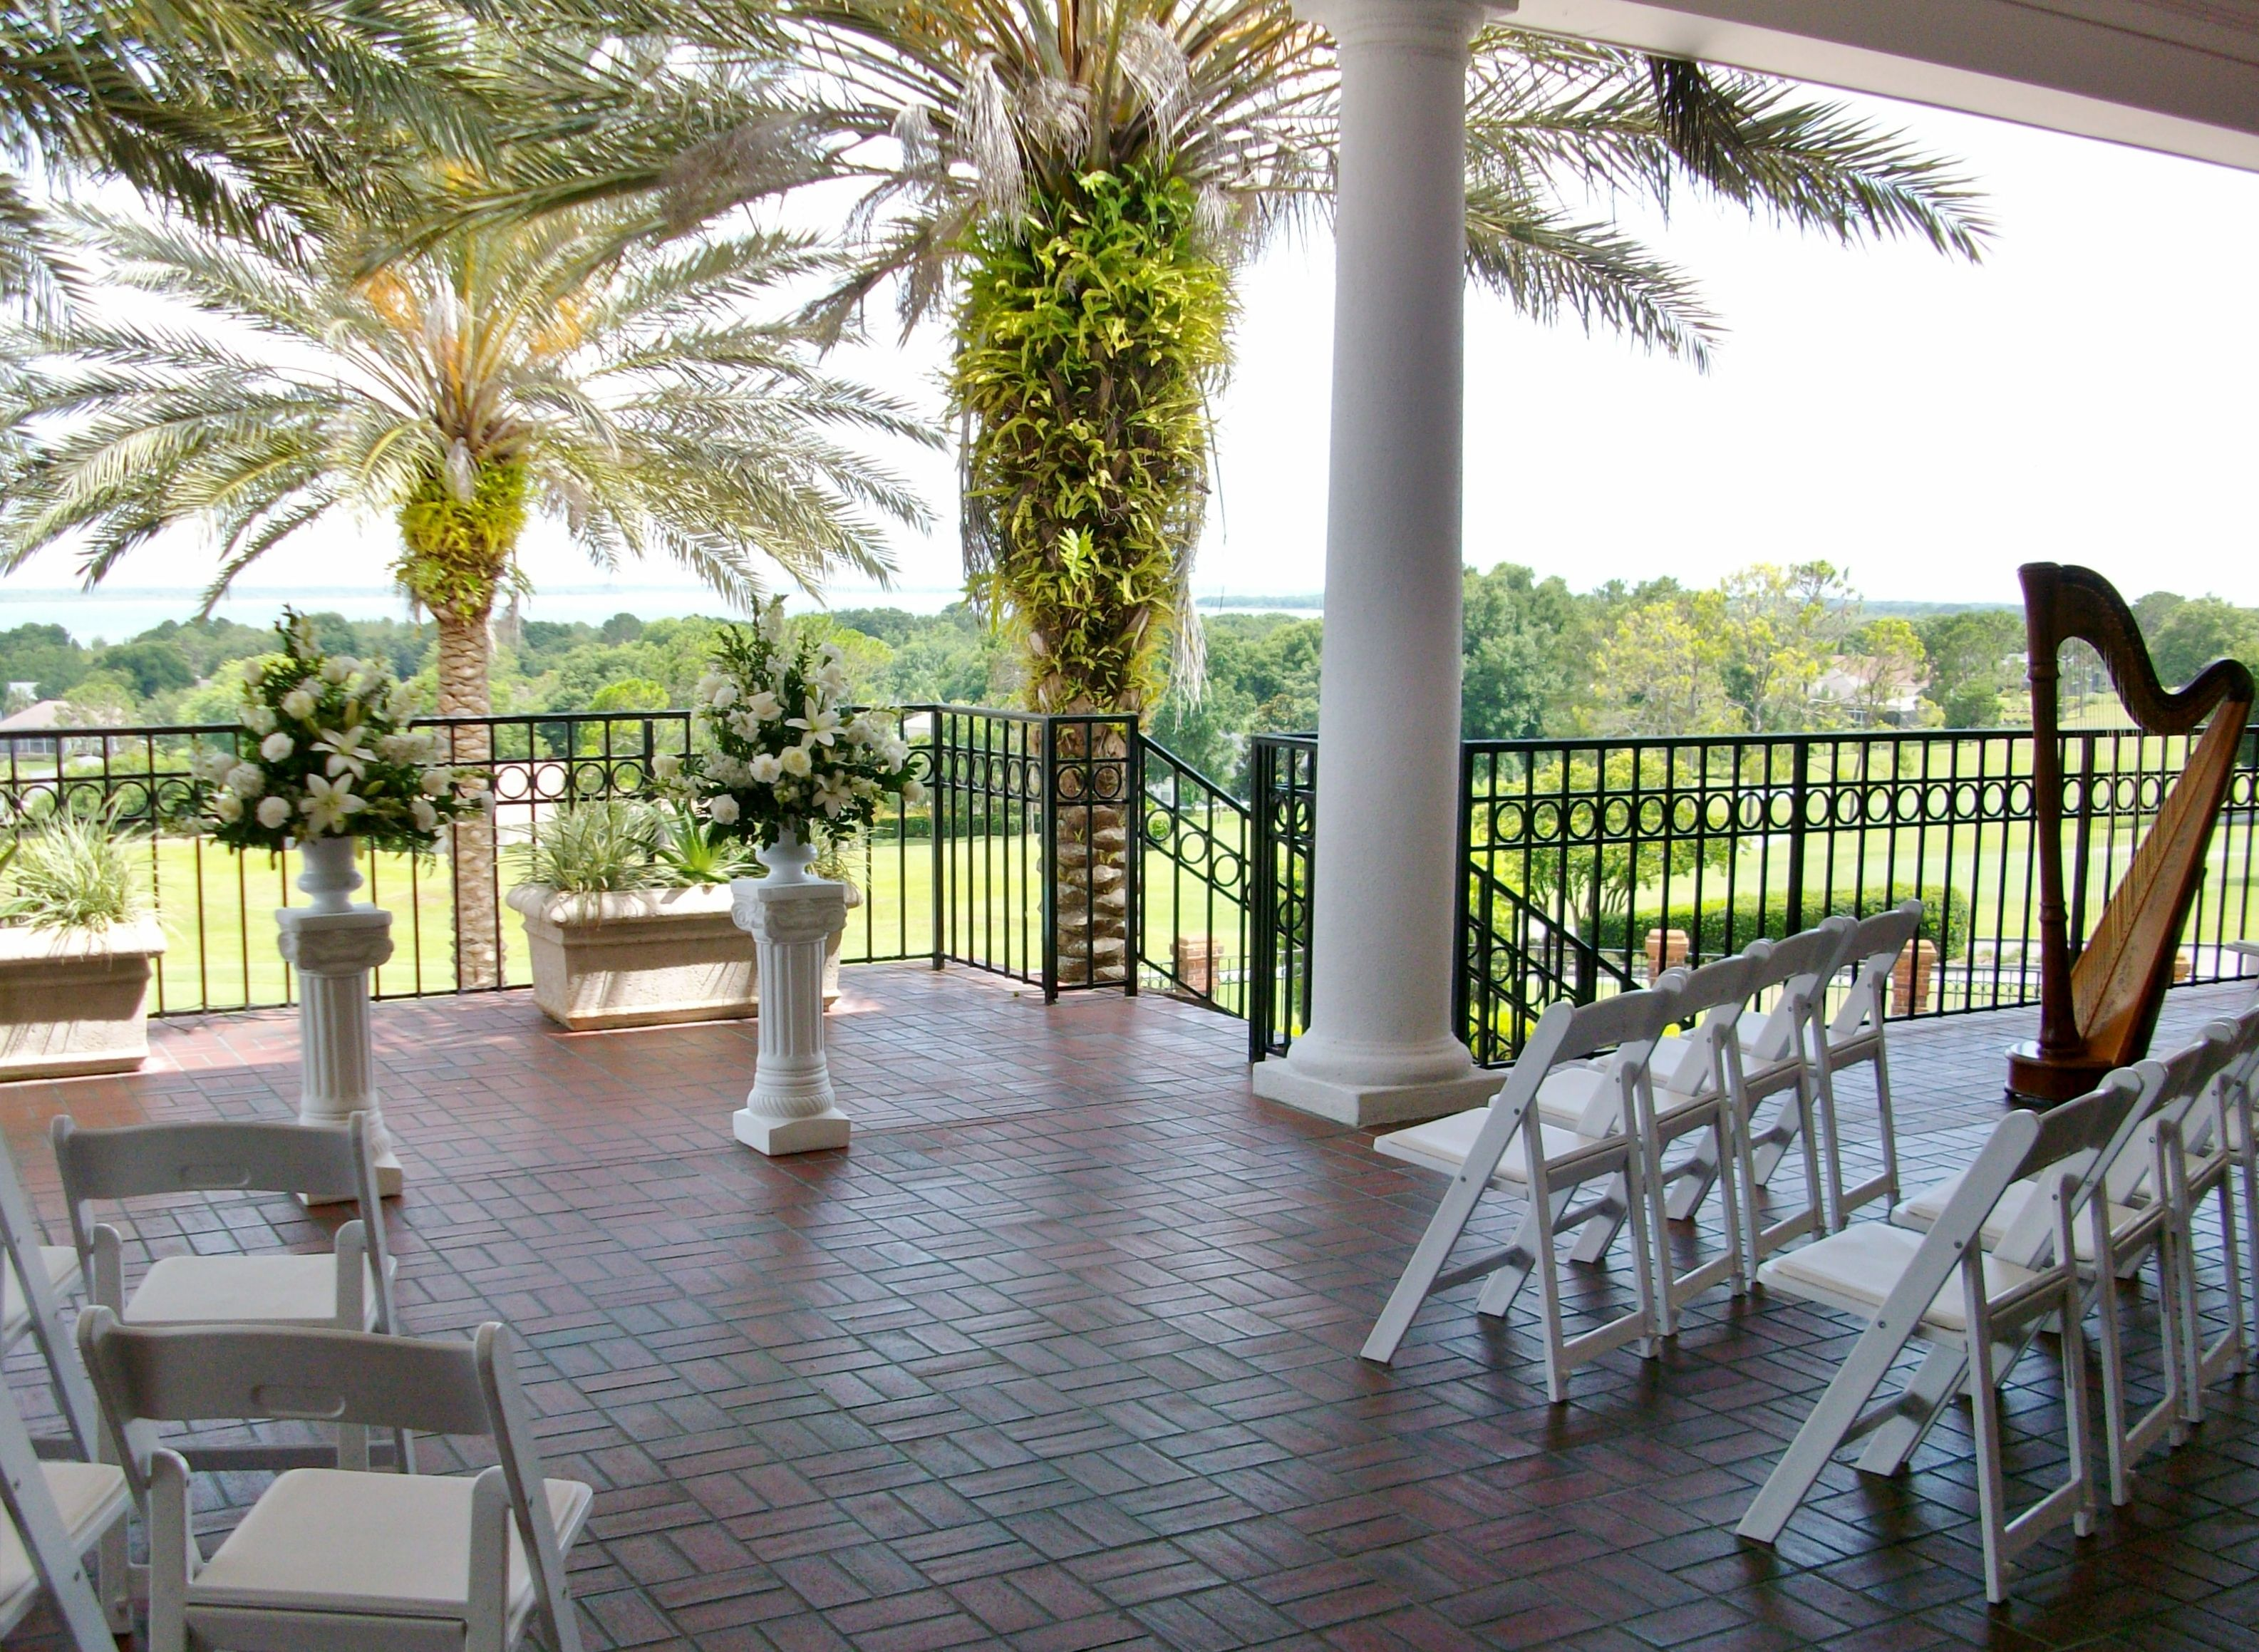 Harbor Hills Country Club Wedding Ceremony On The Terrace Overlooking Golf Course And Lake Griffin